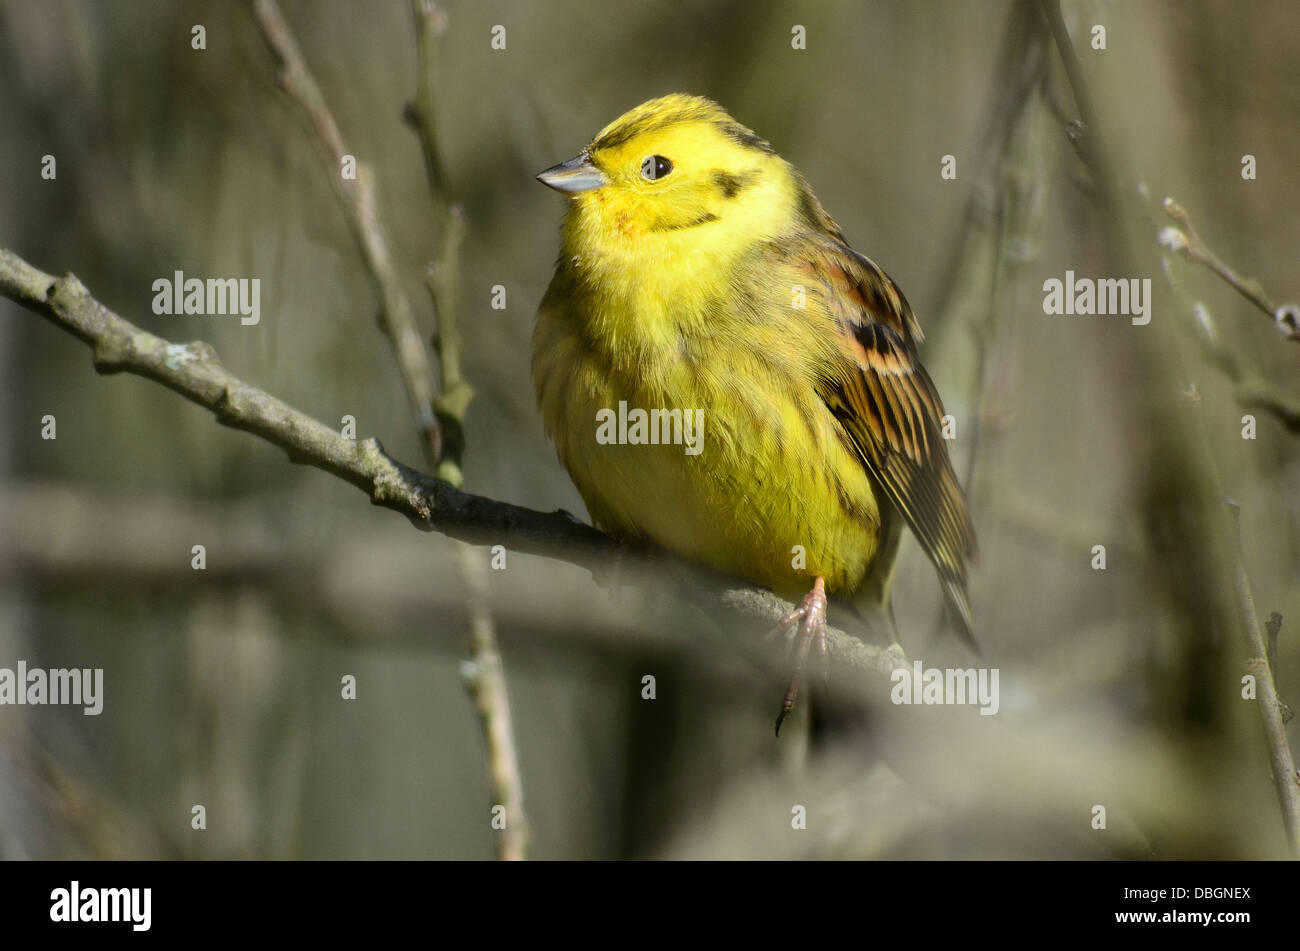 A yellowhammer in a tree UK - Stock Image